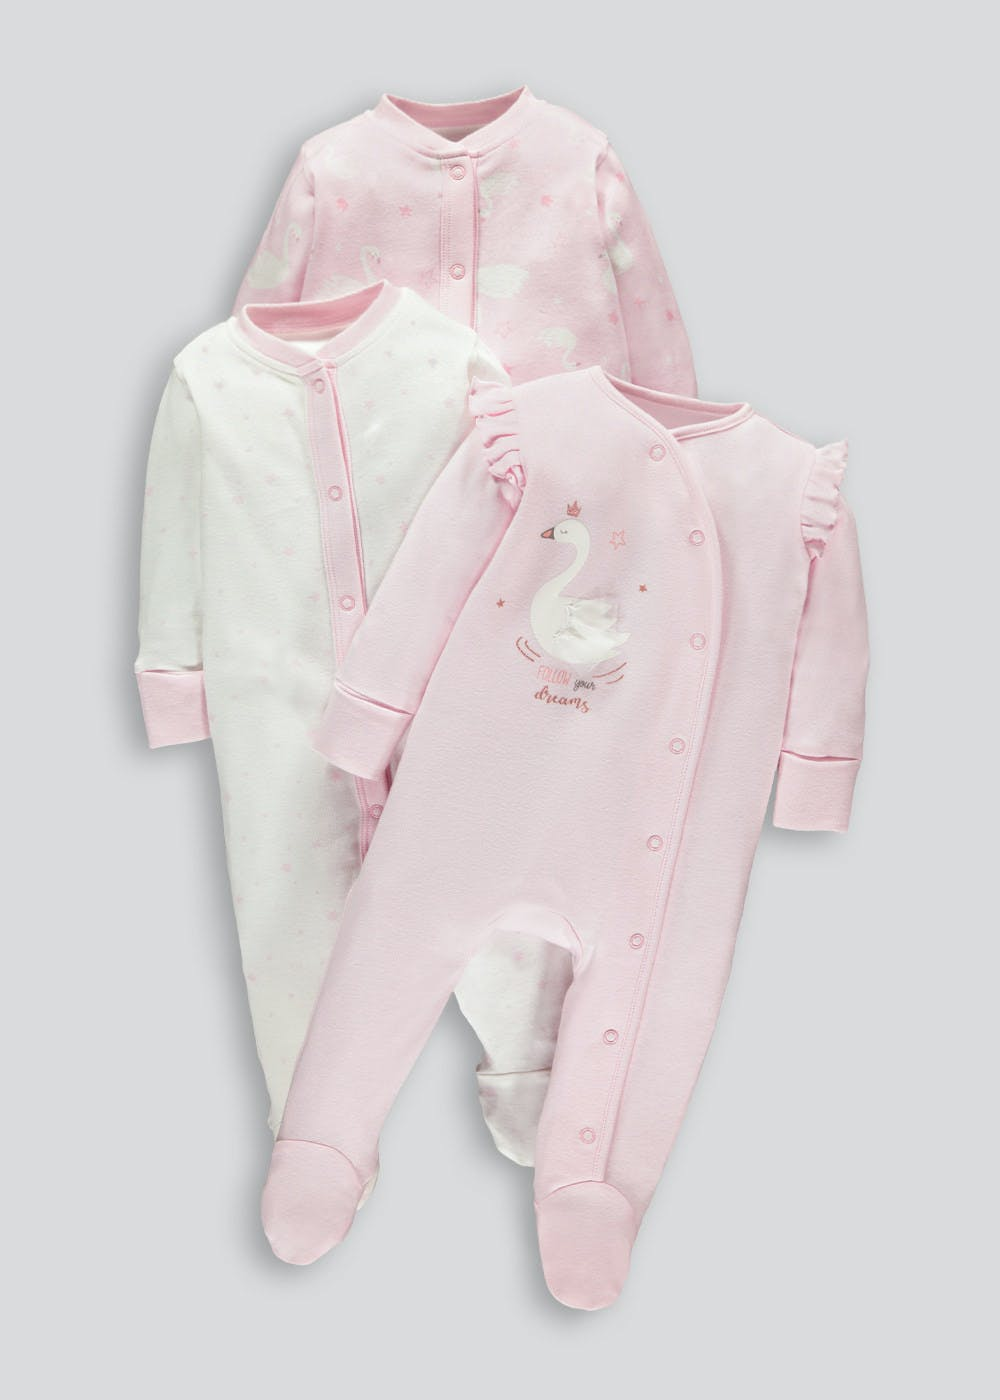 Unisex 3 Pack Swan Baby Grows (Tiny Baby-18mths) – Pink